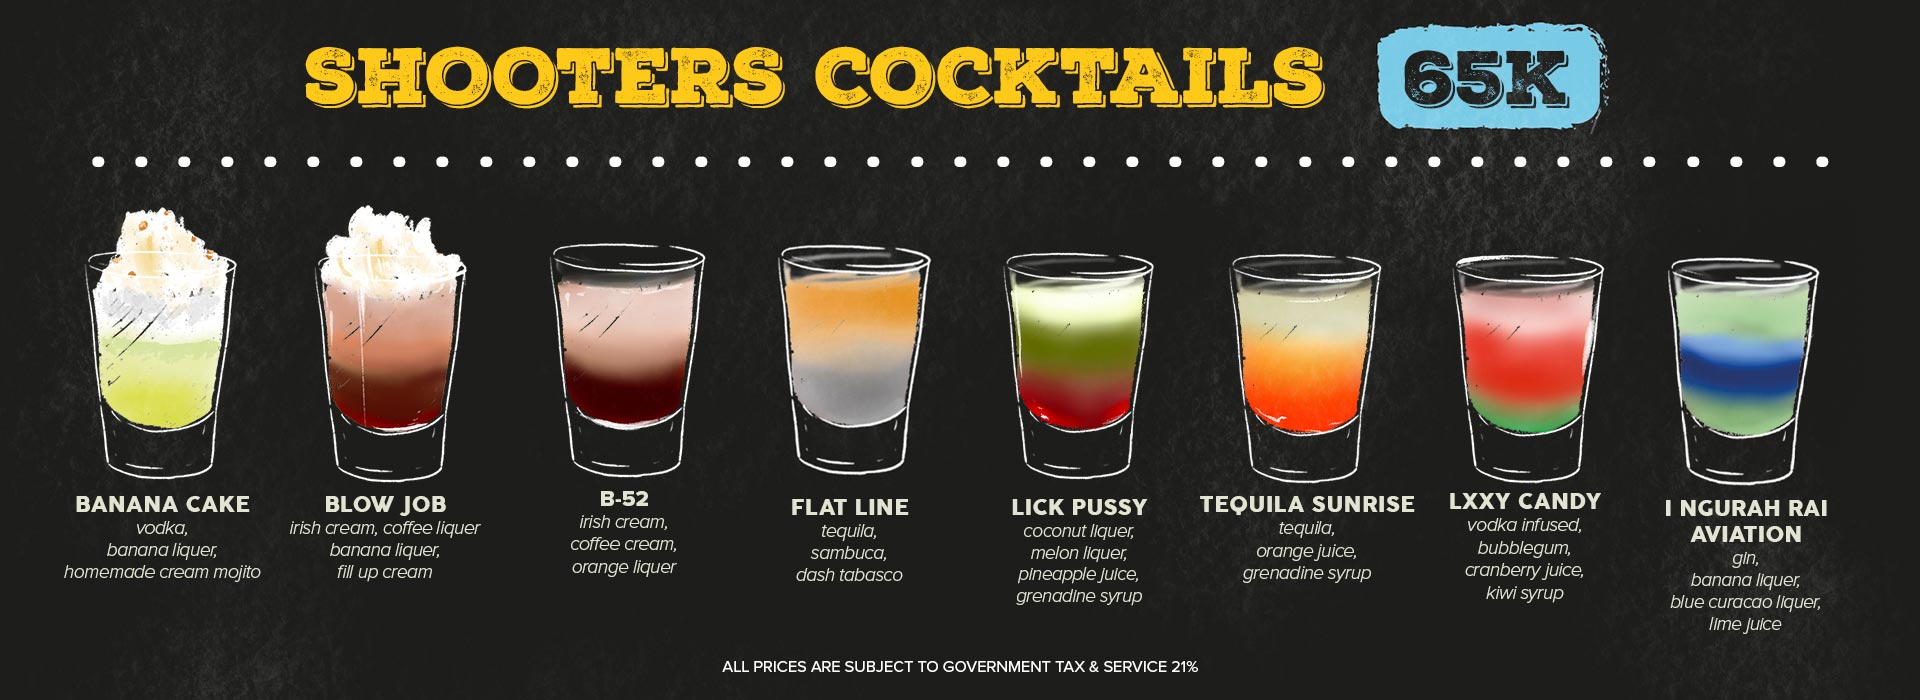 shooters cocktails